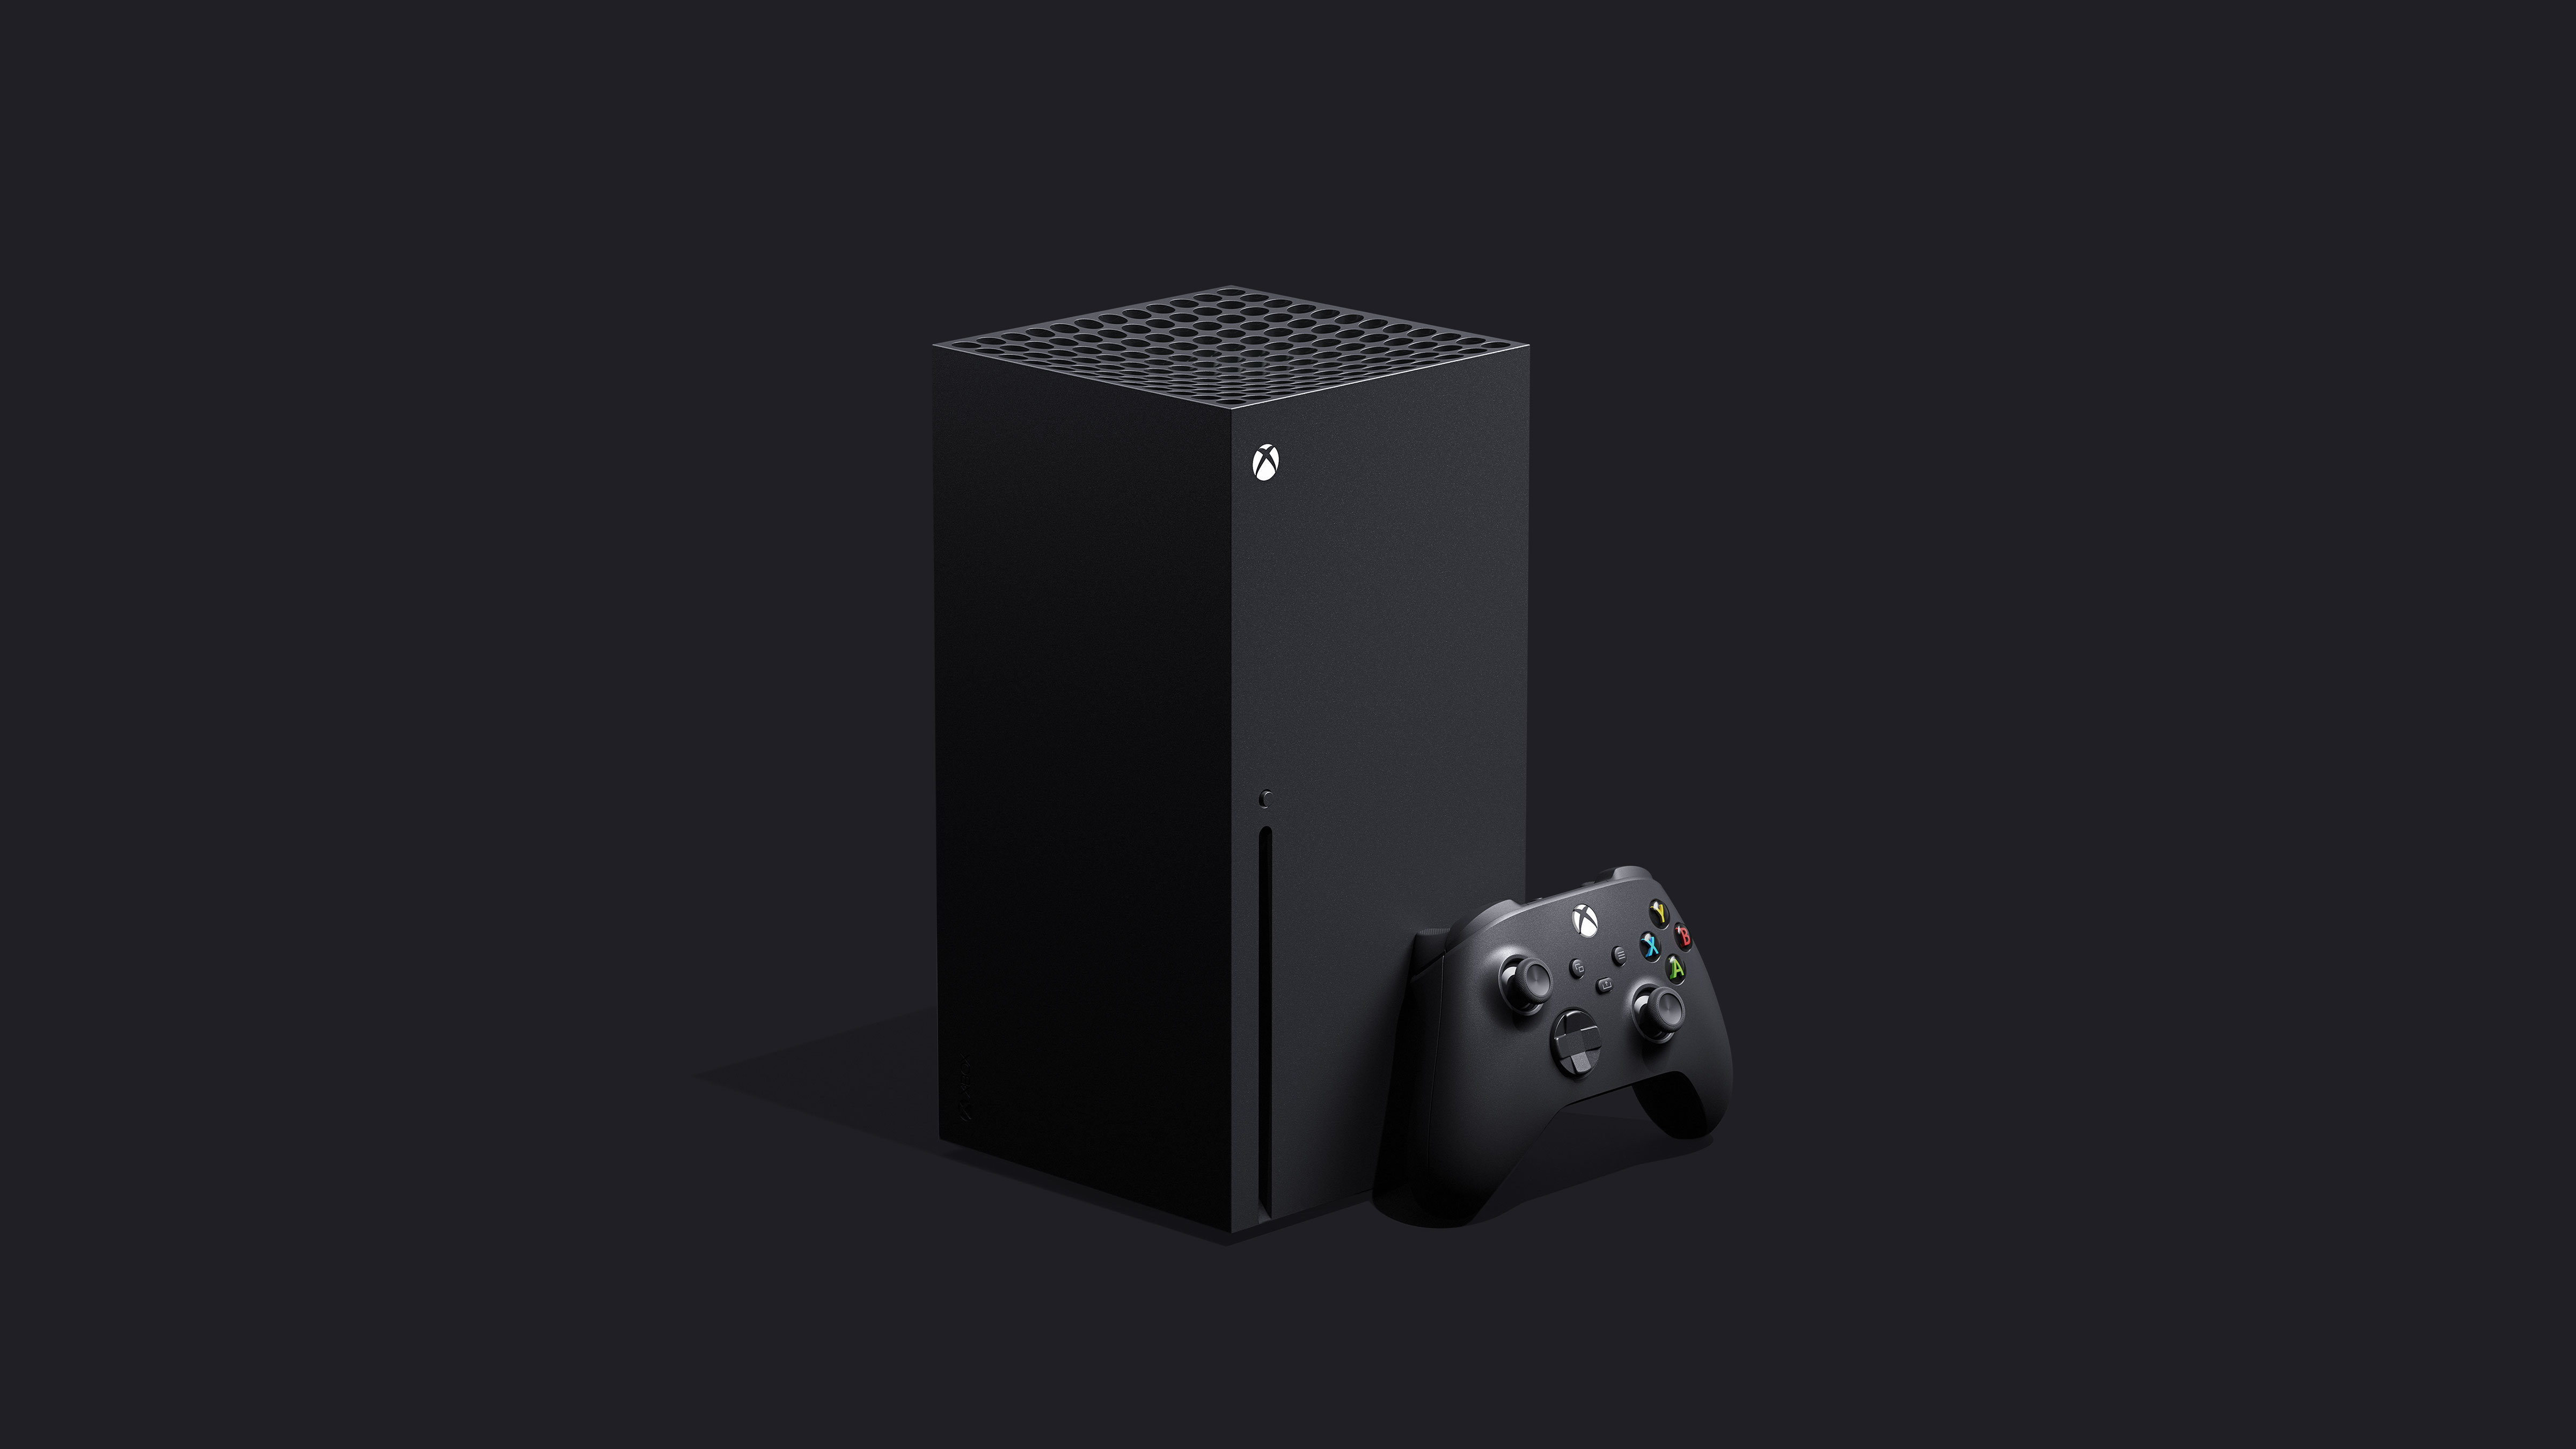 front left angle shot of Xbox Series X with controller standing in front of the console's bottom right corner